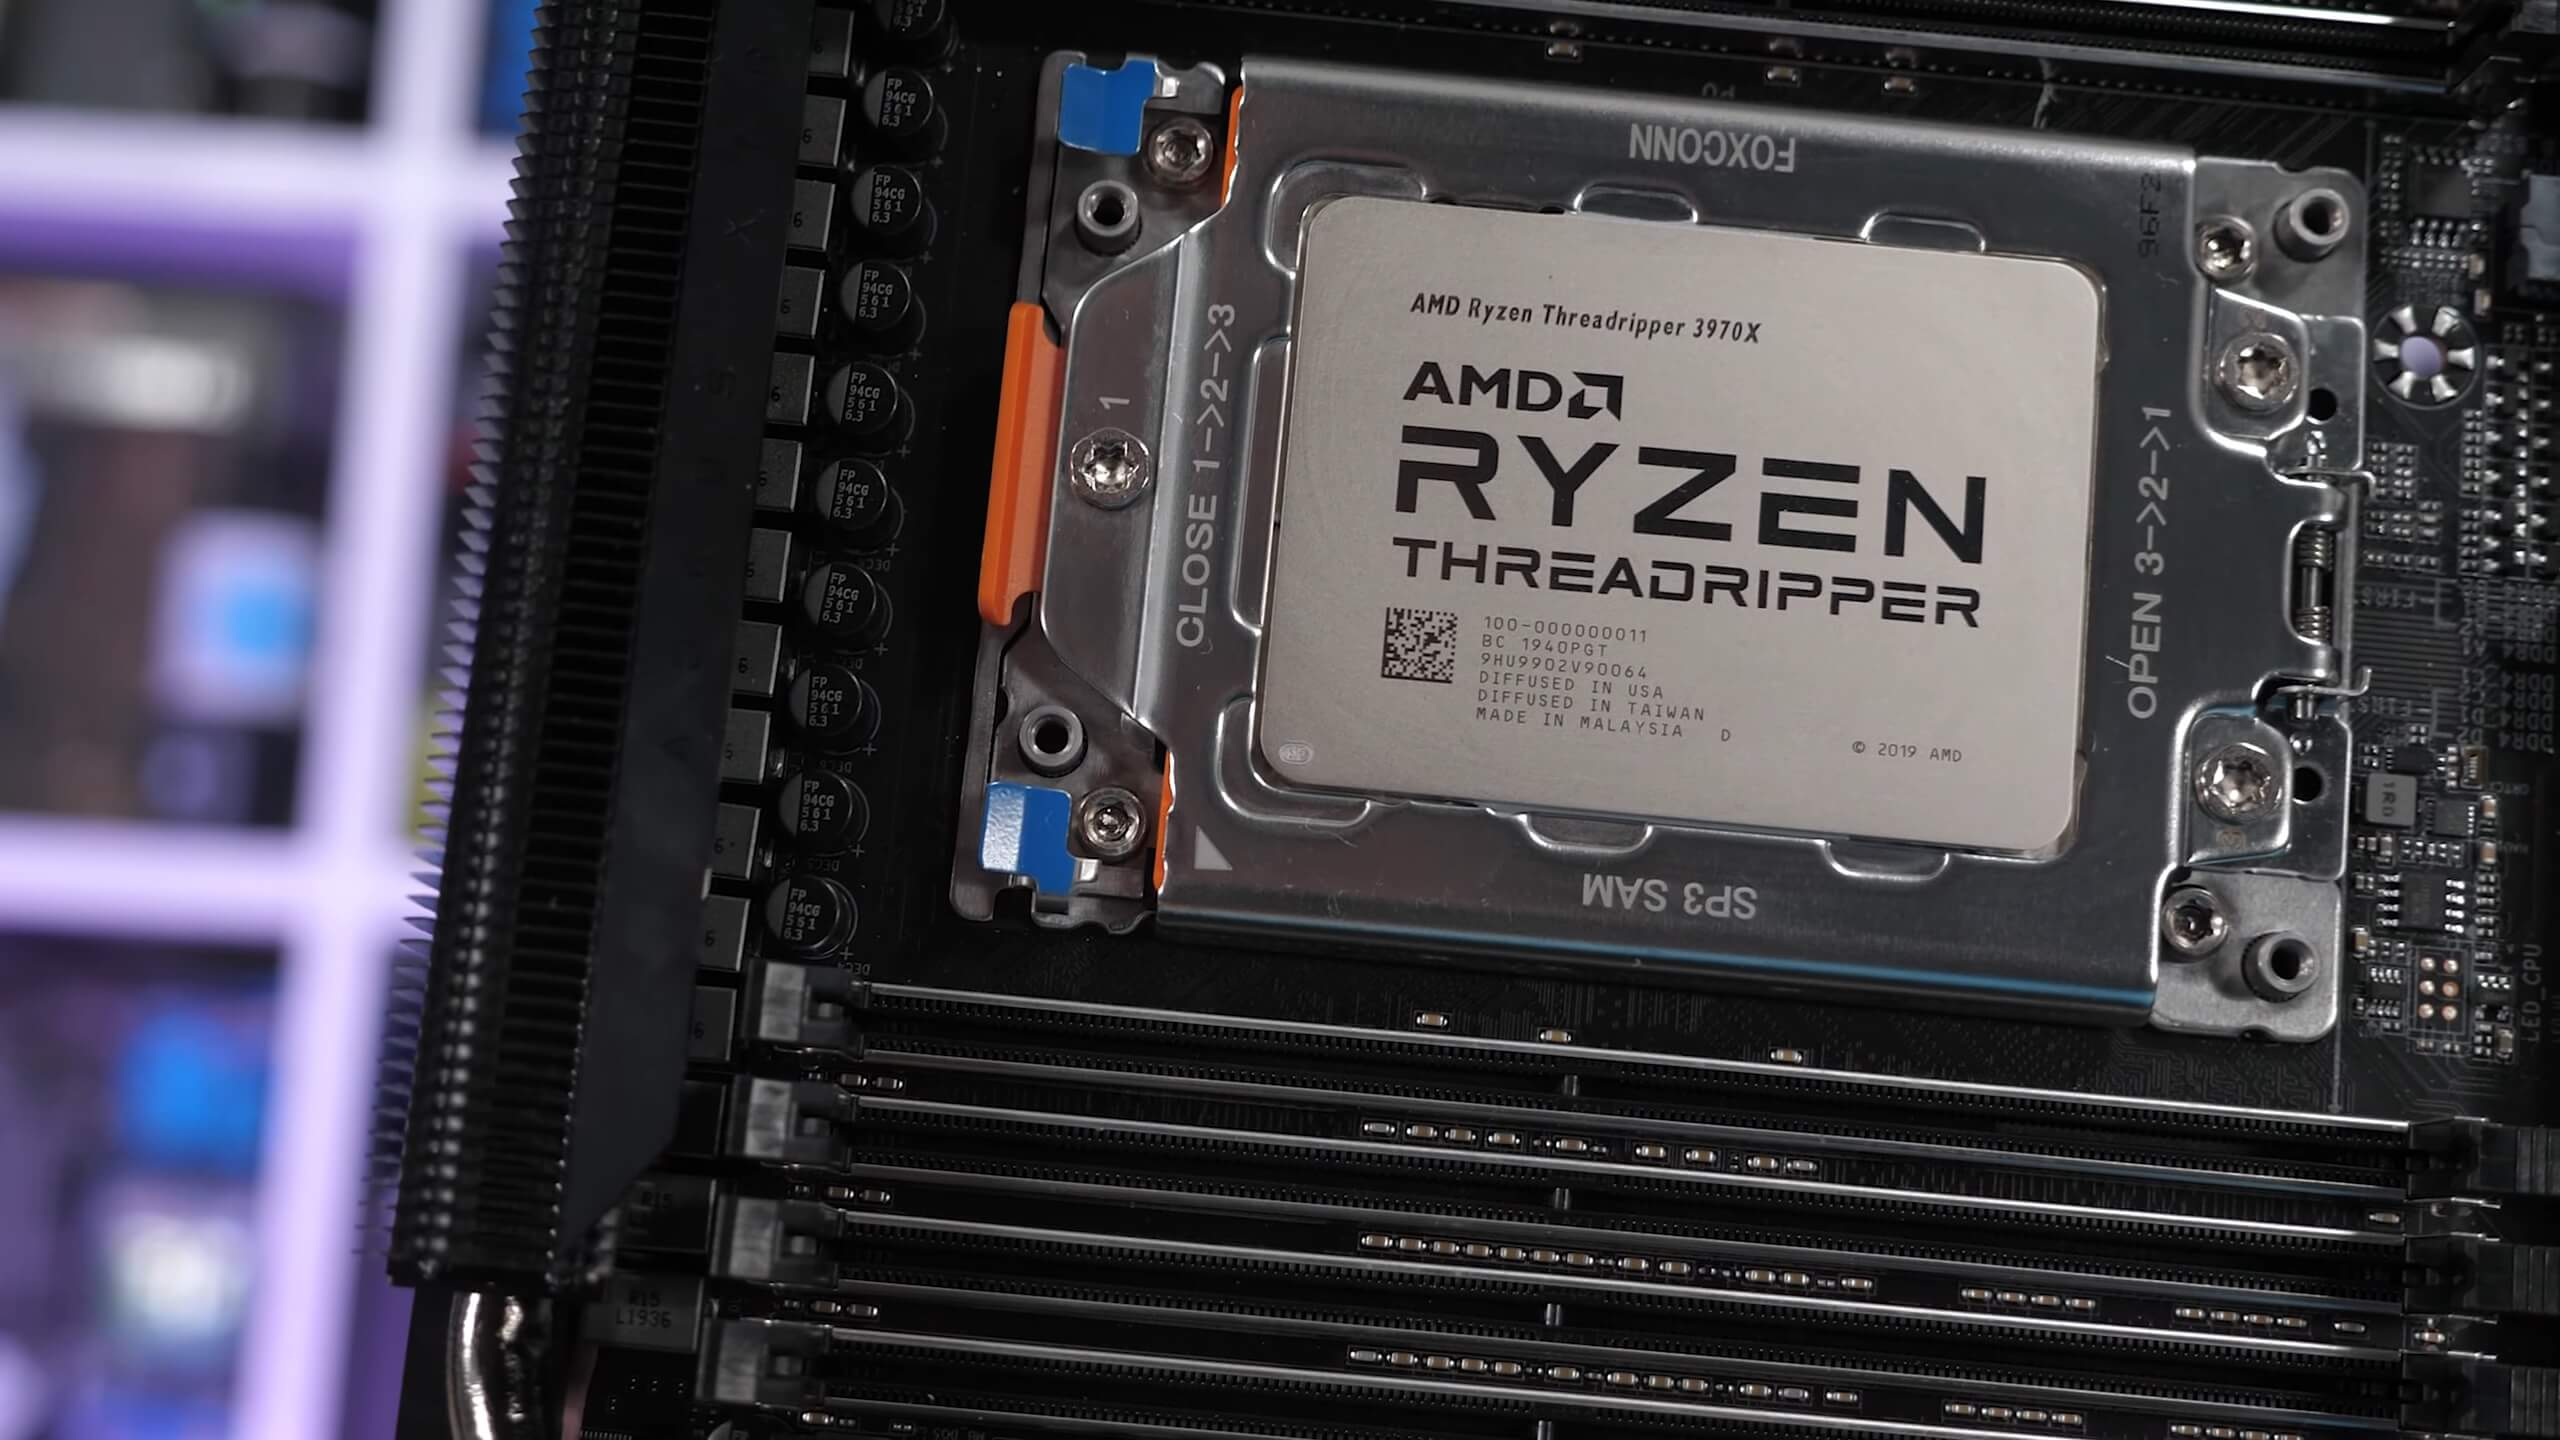 AMD passes Intel as the most popular choice among Puget Systems customers